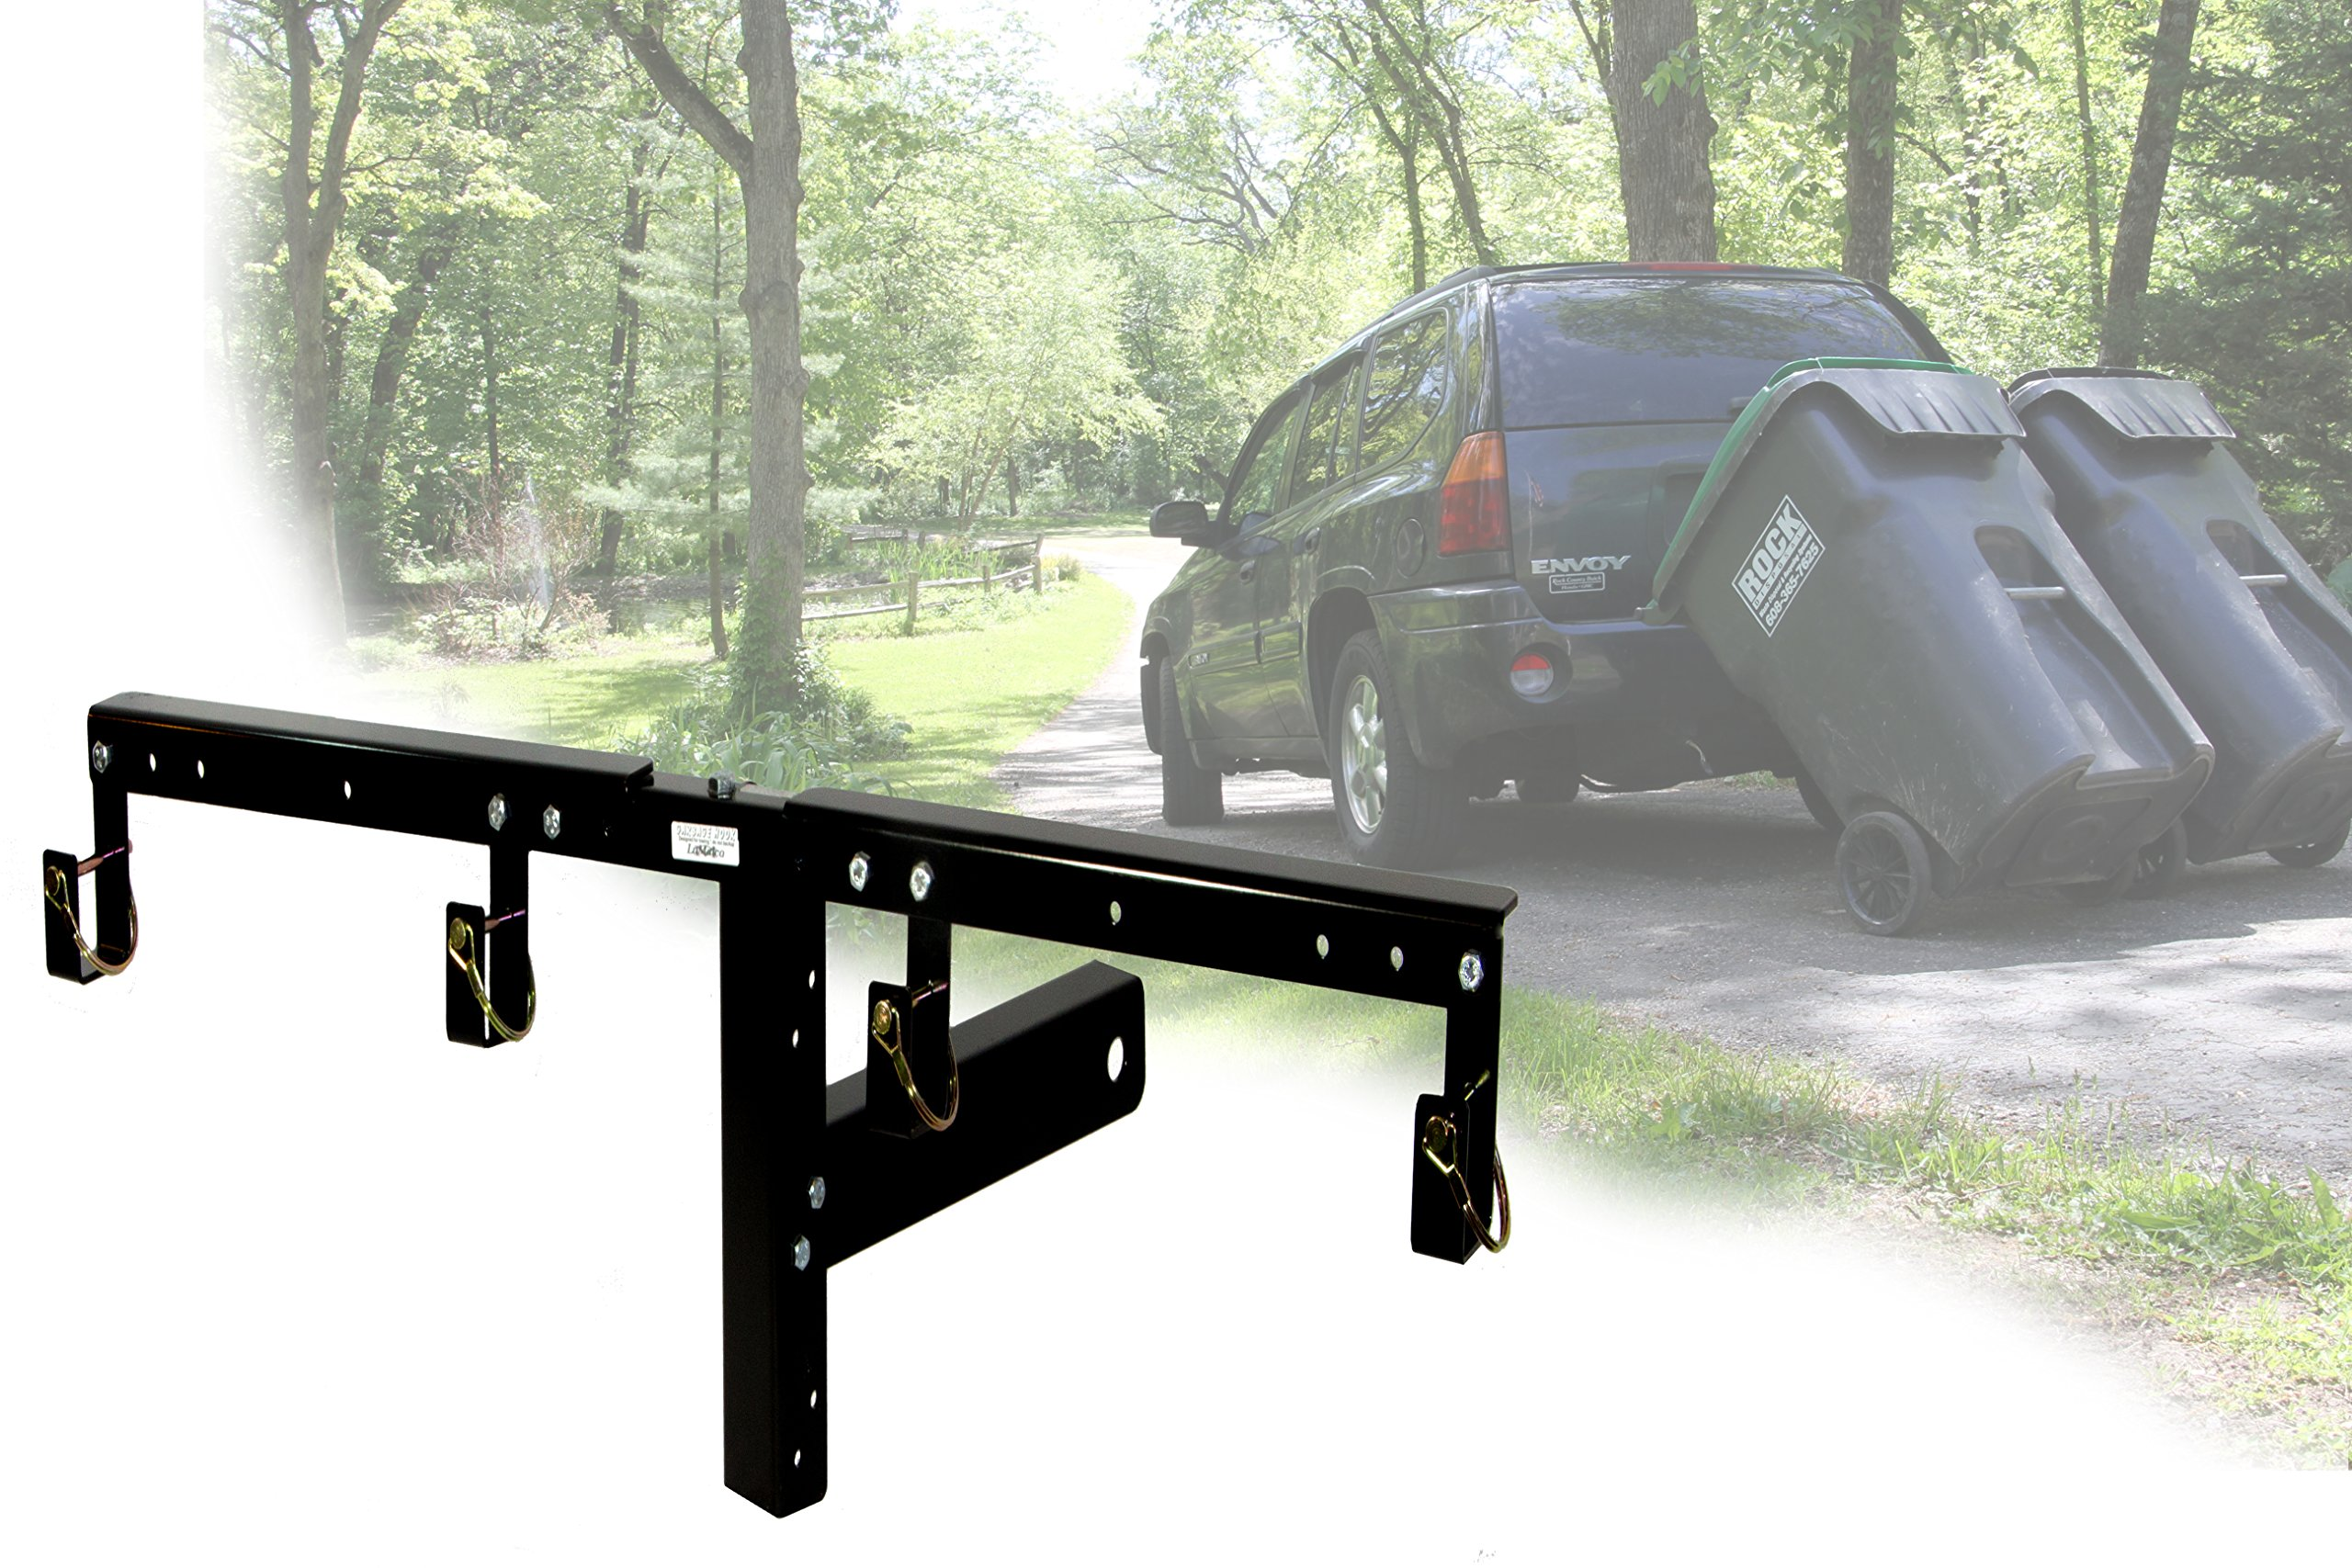 Dual-Can Garbage Hauling Hitch cans Cannot Come Loose. Garbage Hooks are The Perfect Solution for Getting Wheeled Garbage constrainers Out When You Have a Long/steep Driveway, or challenging Terrain by Garbage Commander (Image #2)